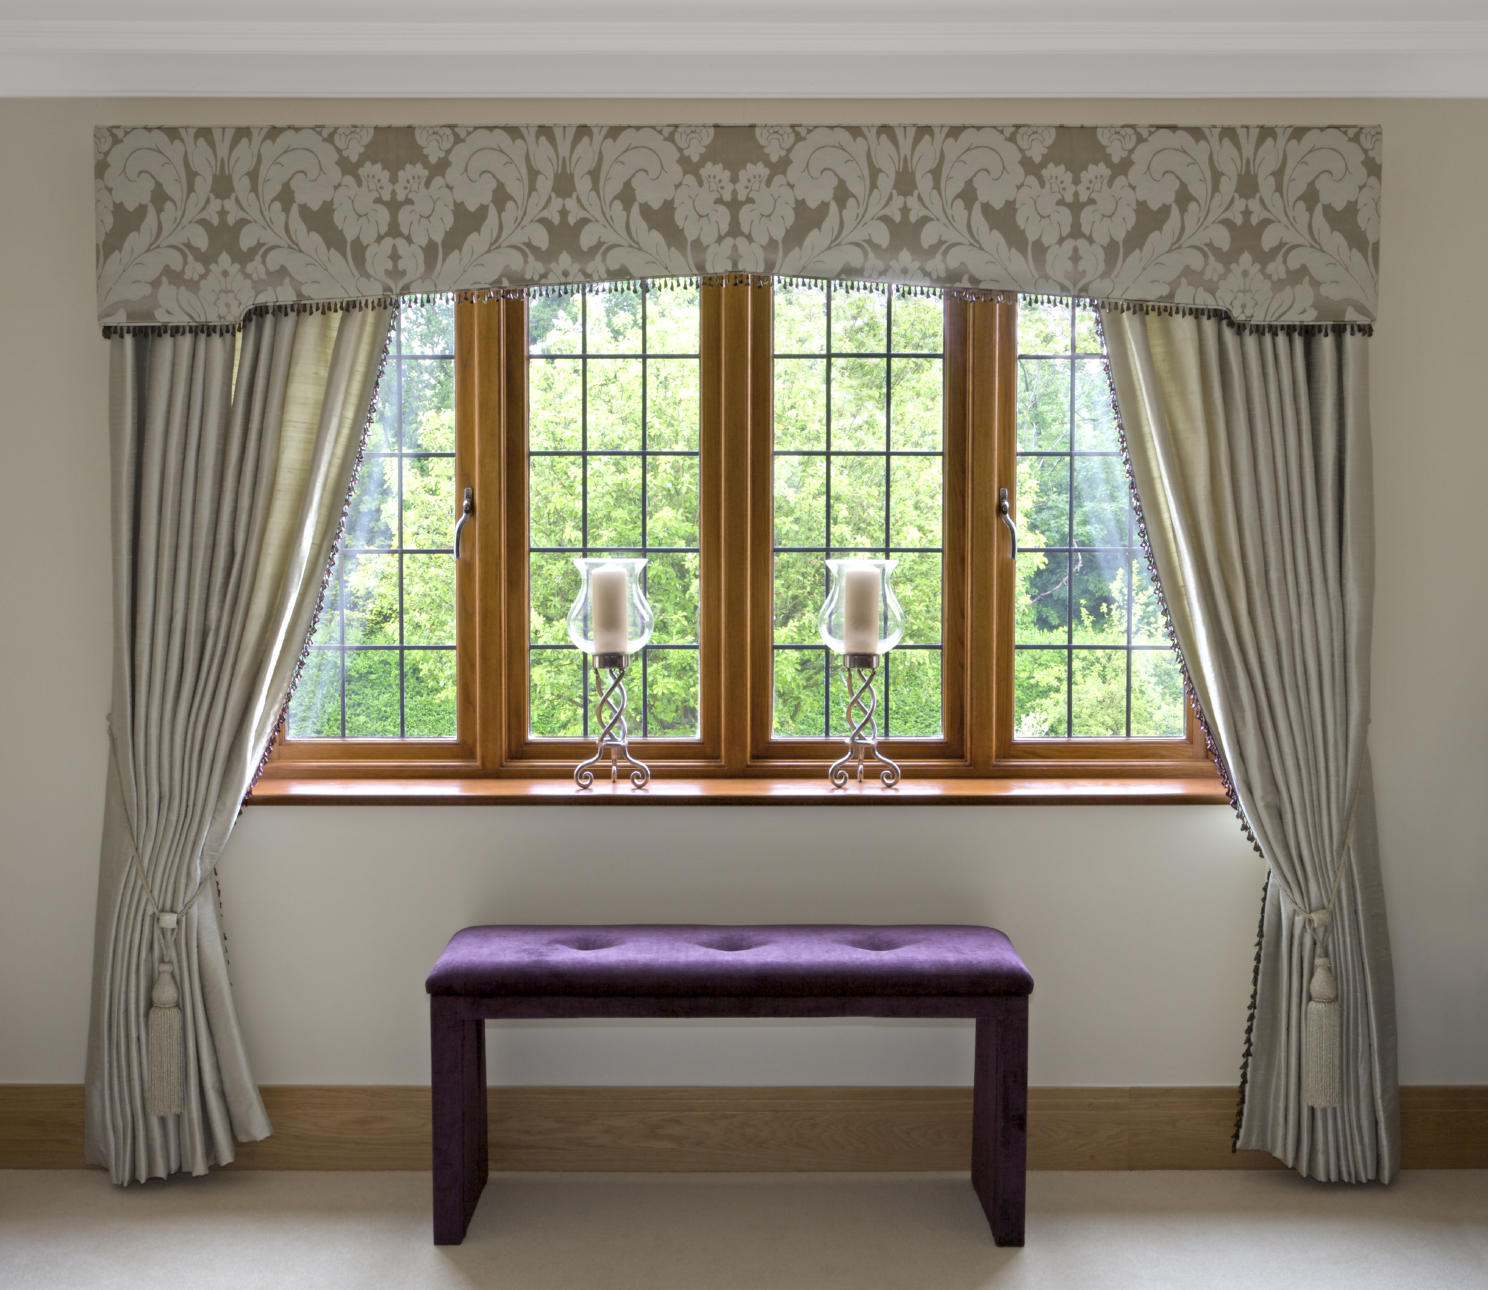 3 ways to diy your own window treatments tlcme tlc for Window treatments